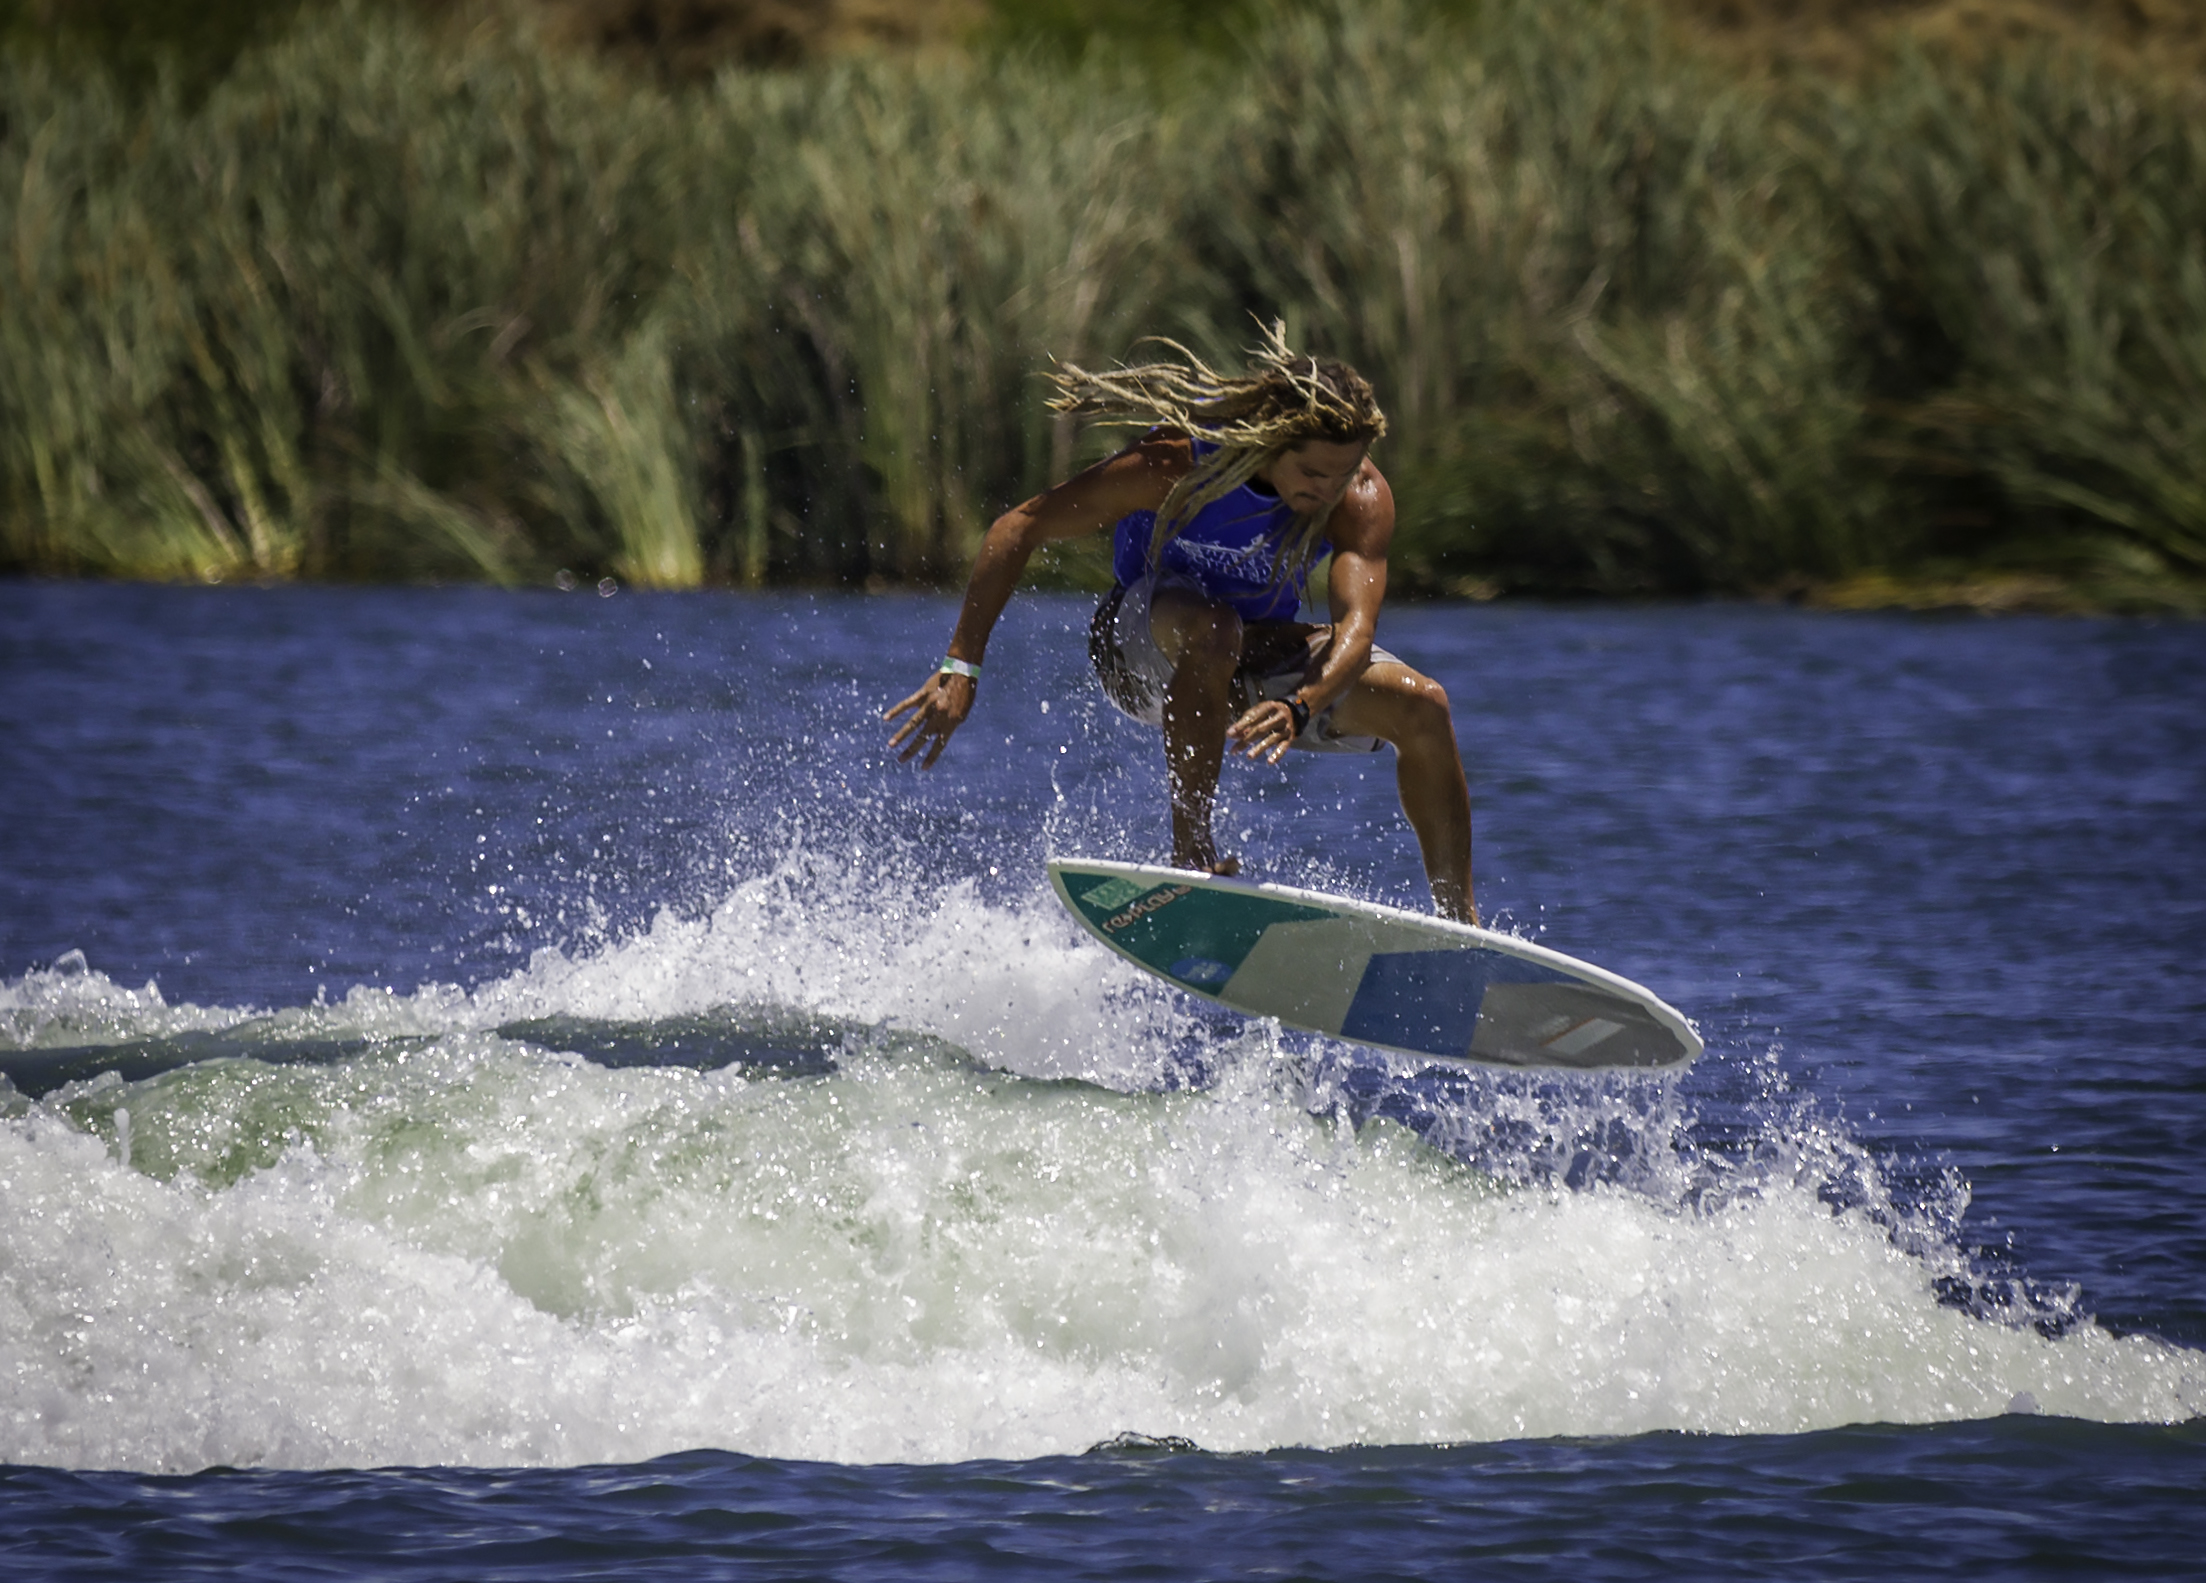 """""""Making His Mark."""" 2013 World Champion Ocean Skim Boarder Austin Keen is making his mark behind a boat now. Austin has awesome style and is a great guy around the site. Austin even had a wakesurf video on The Ellen Show recently. Austin took 2nd in Pro Skim."""